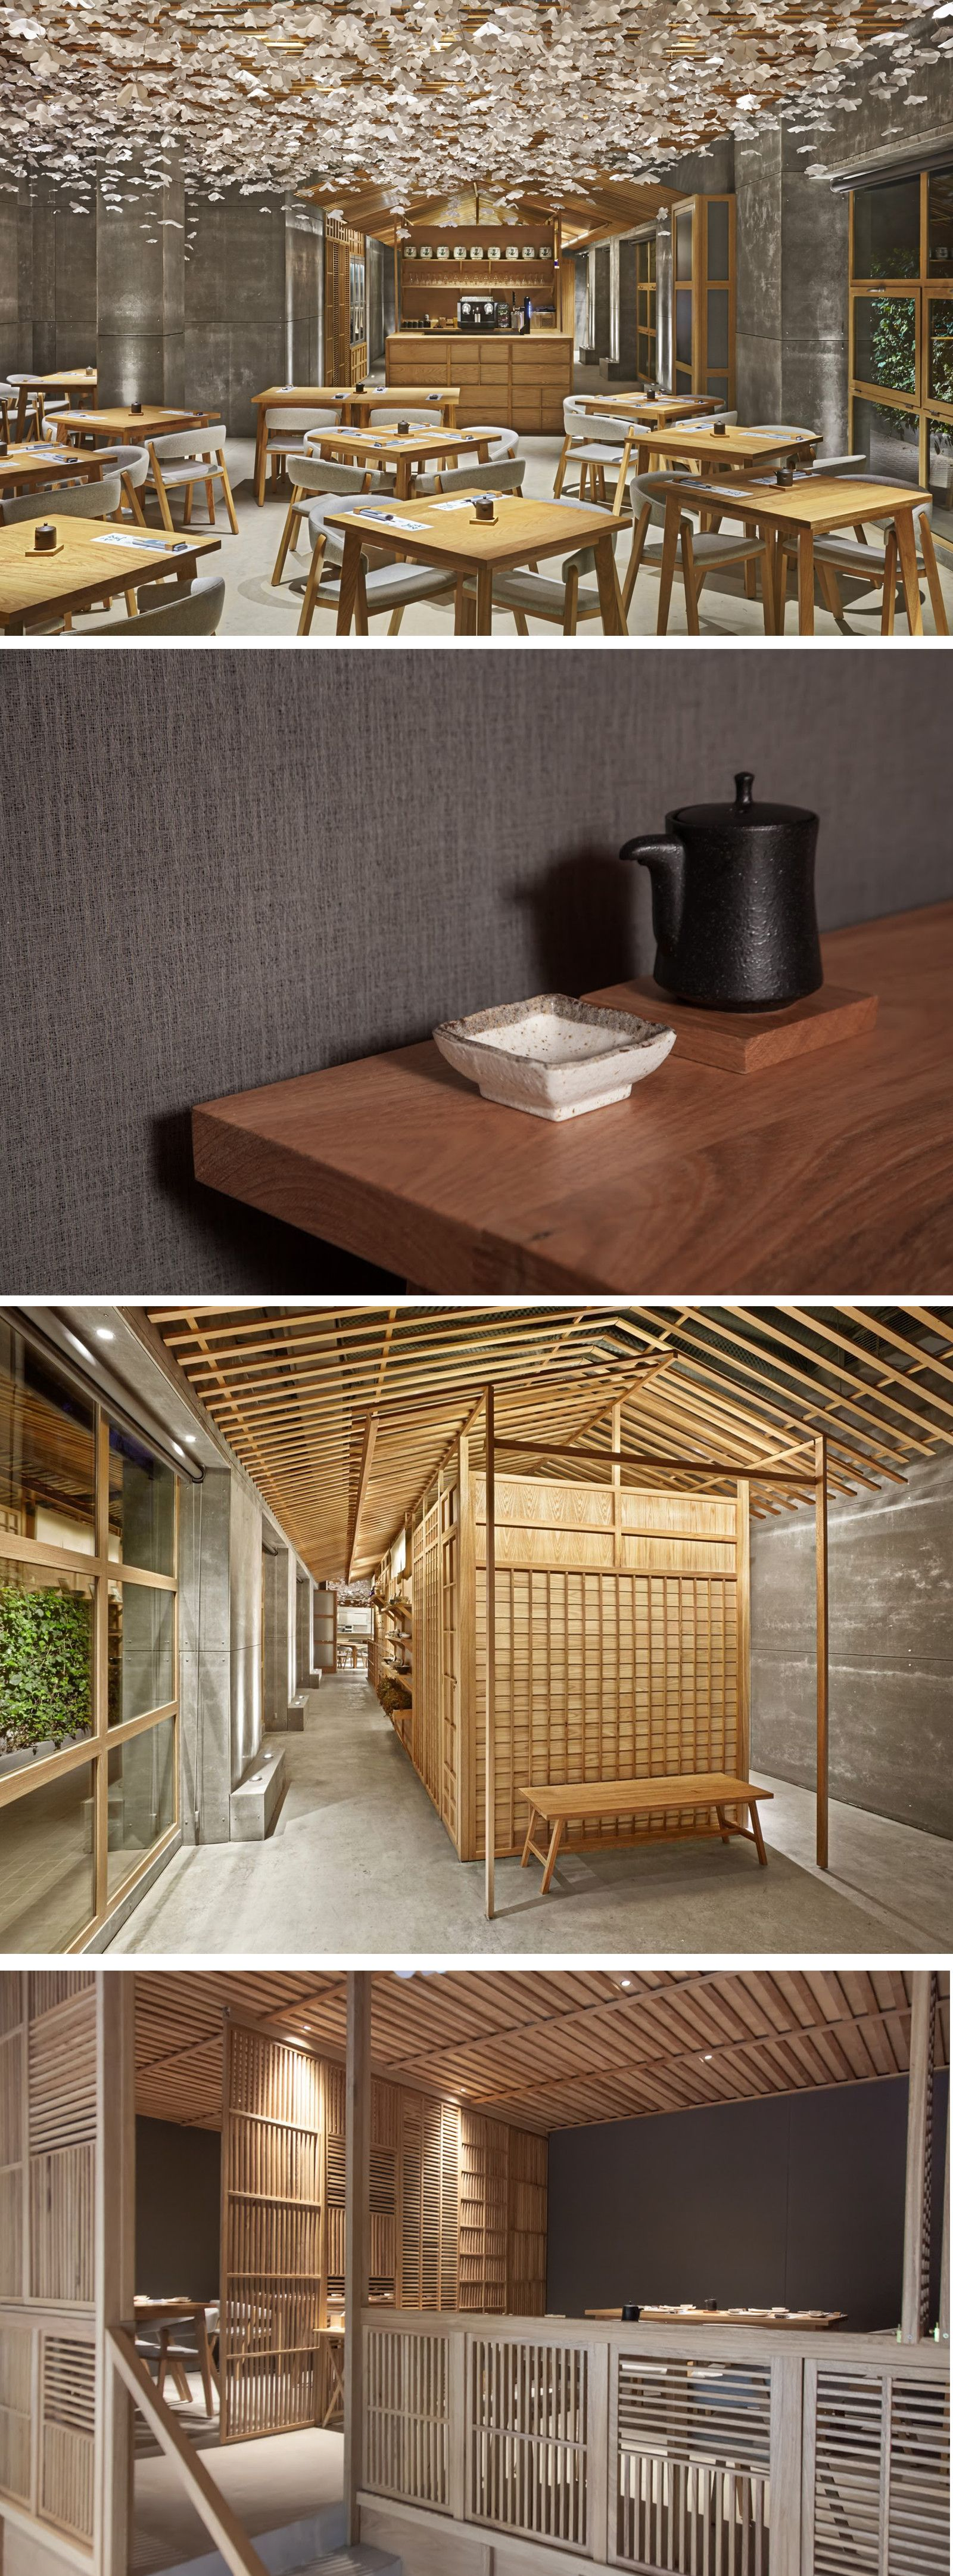 Nozomi Sushi equipodrt recycled fabric, up swing, covers the walls of the vip